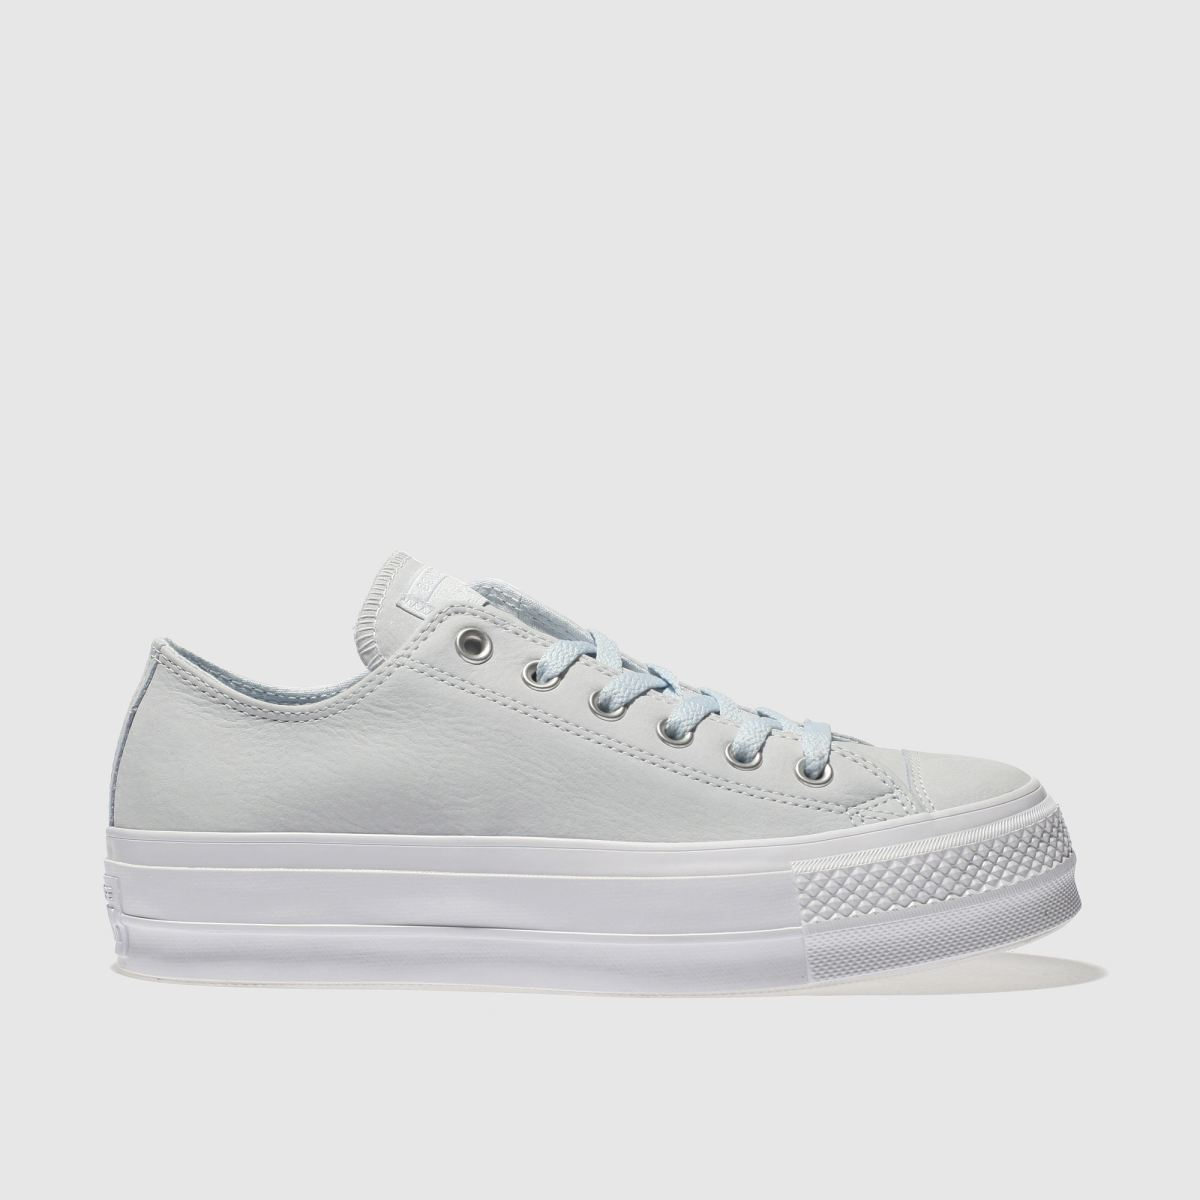 Converse Pale Blue Ox Lift Platform Nubuck Trainers